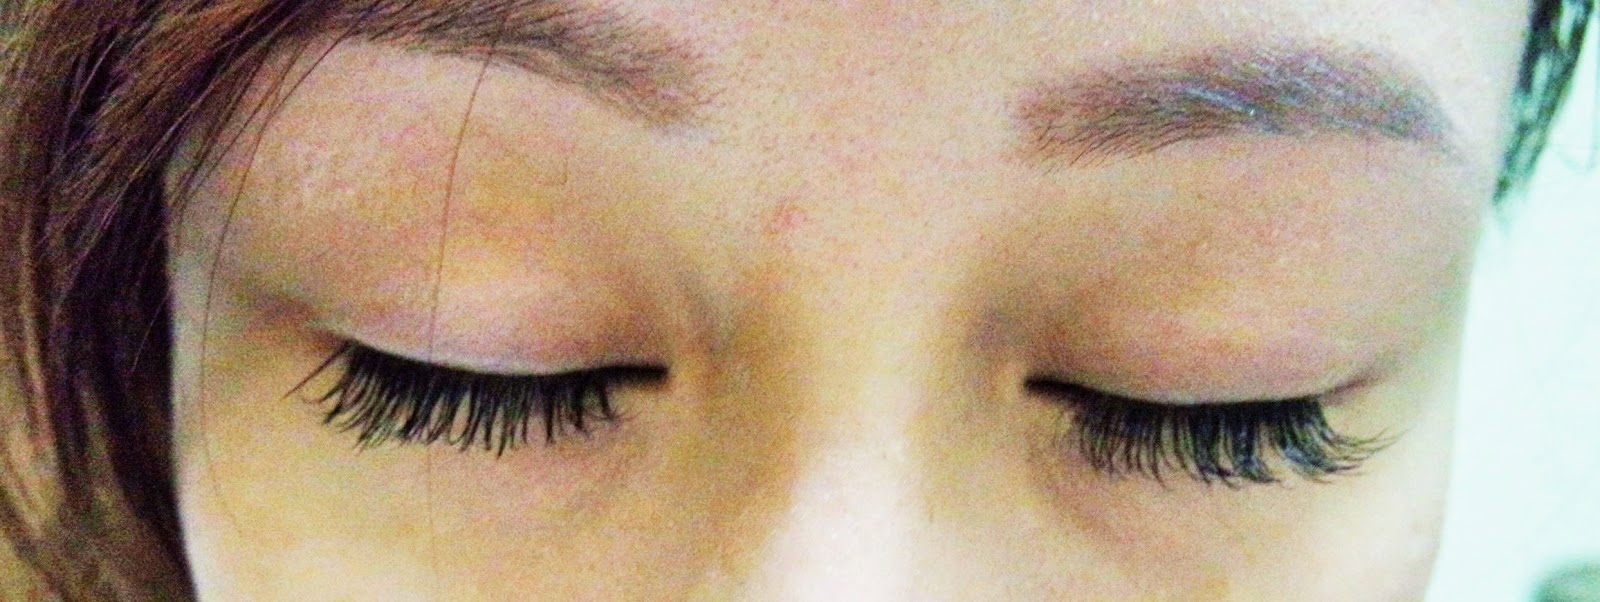 how to fix tangled eyelash extensions